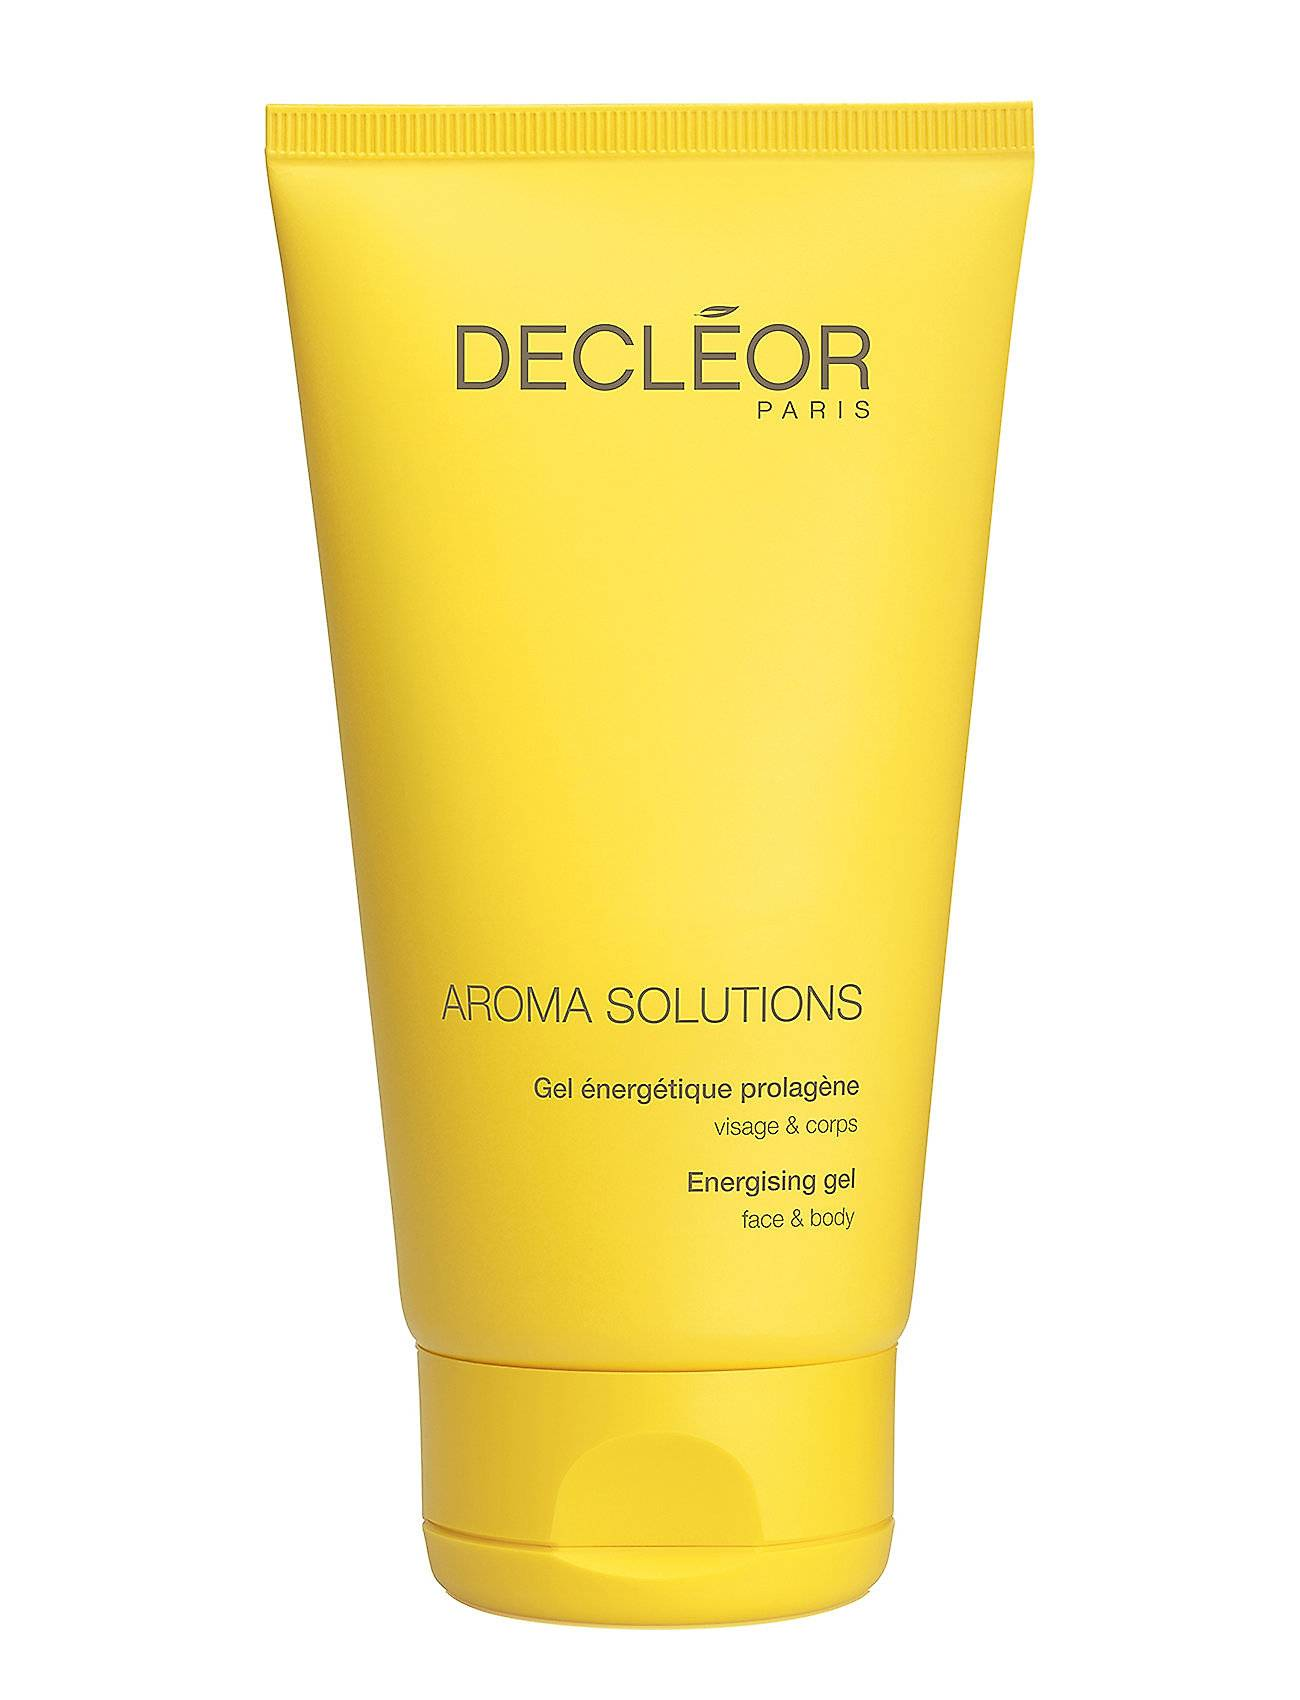 Decléor Proline Prolagene Gel Beauty WOMEN Skin Care Body Body Lotion Nude Decléor